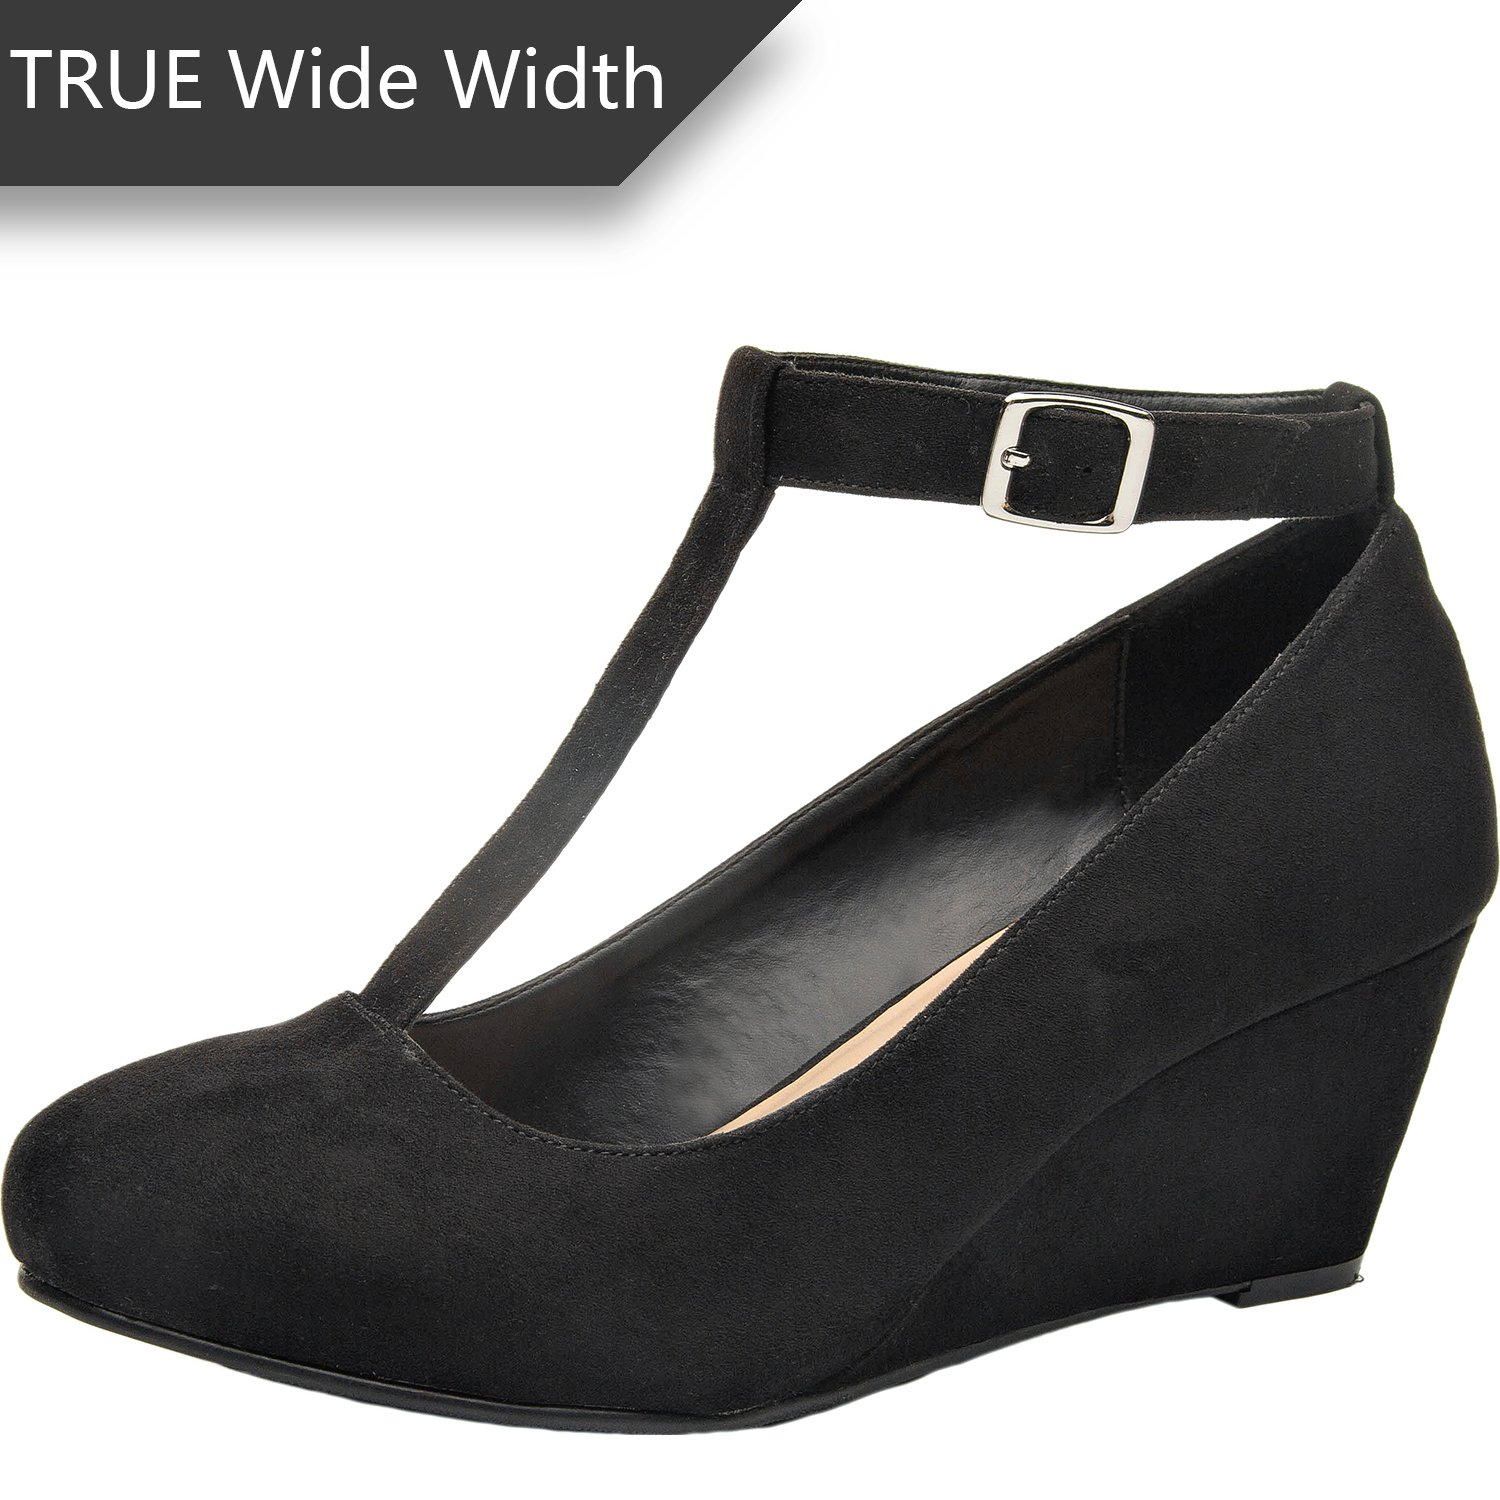 Luoika Women's Wide Width Wedge Shoes - Mary Jane Heel Pump with T-Strap. (Black 180310,11.5WW)